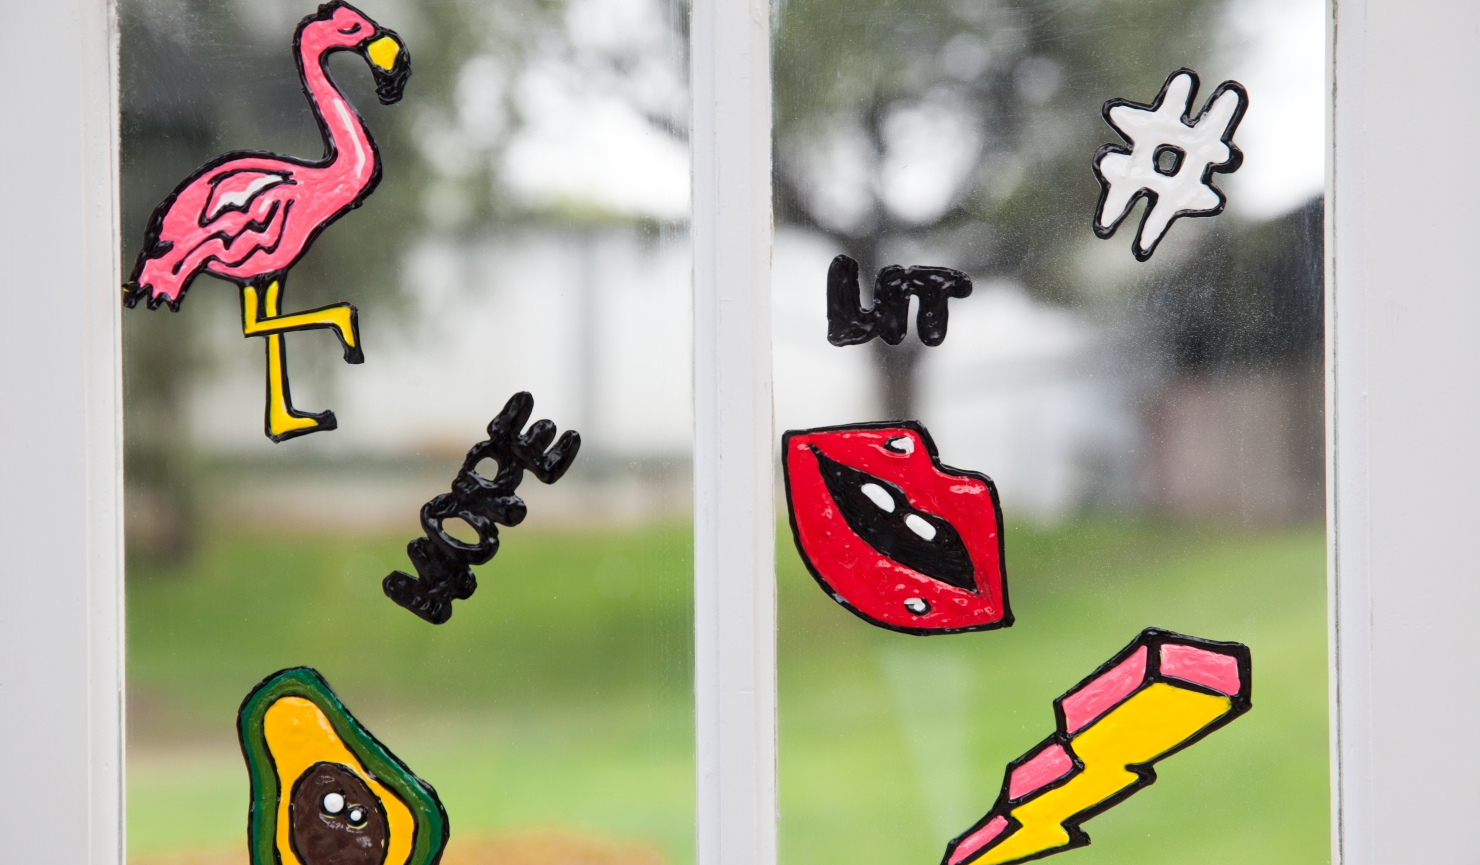 How to Make Window Clings with Dimensional Paint